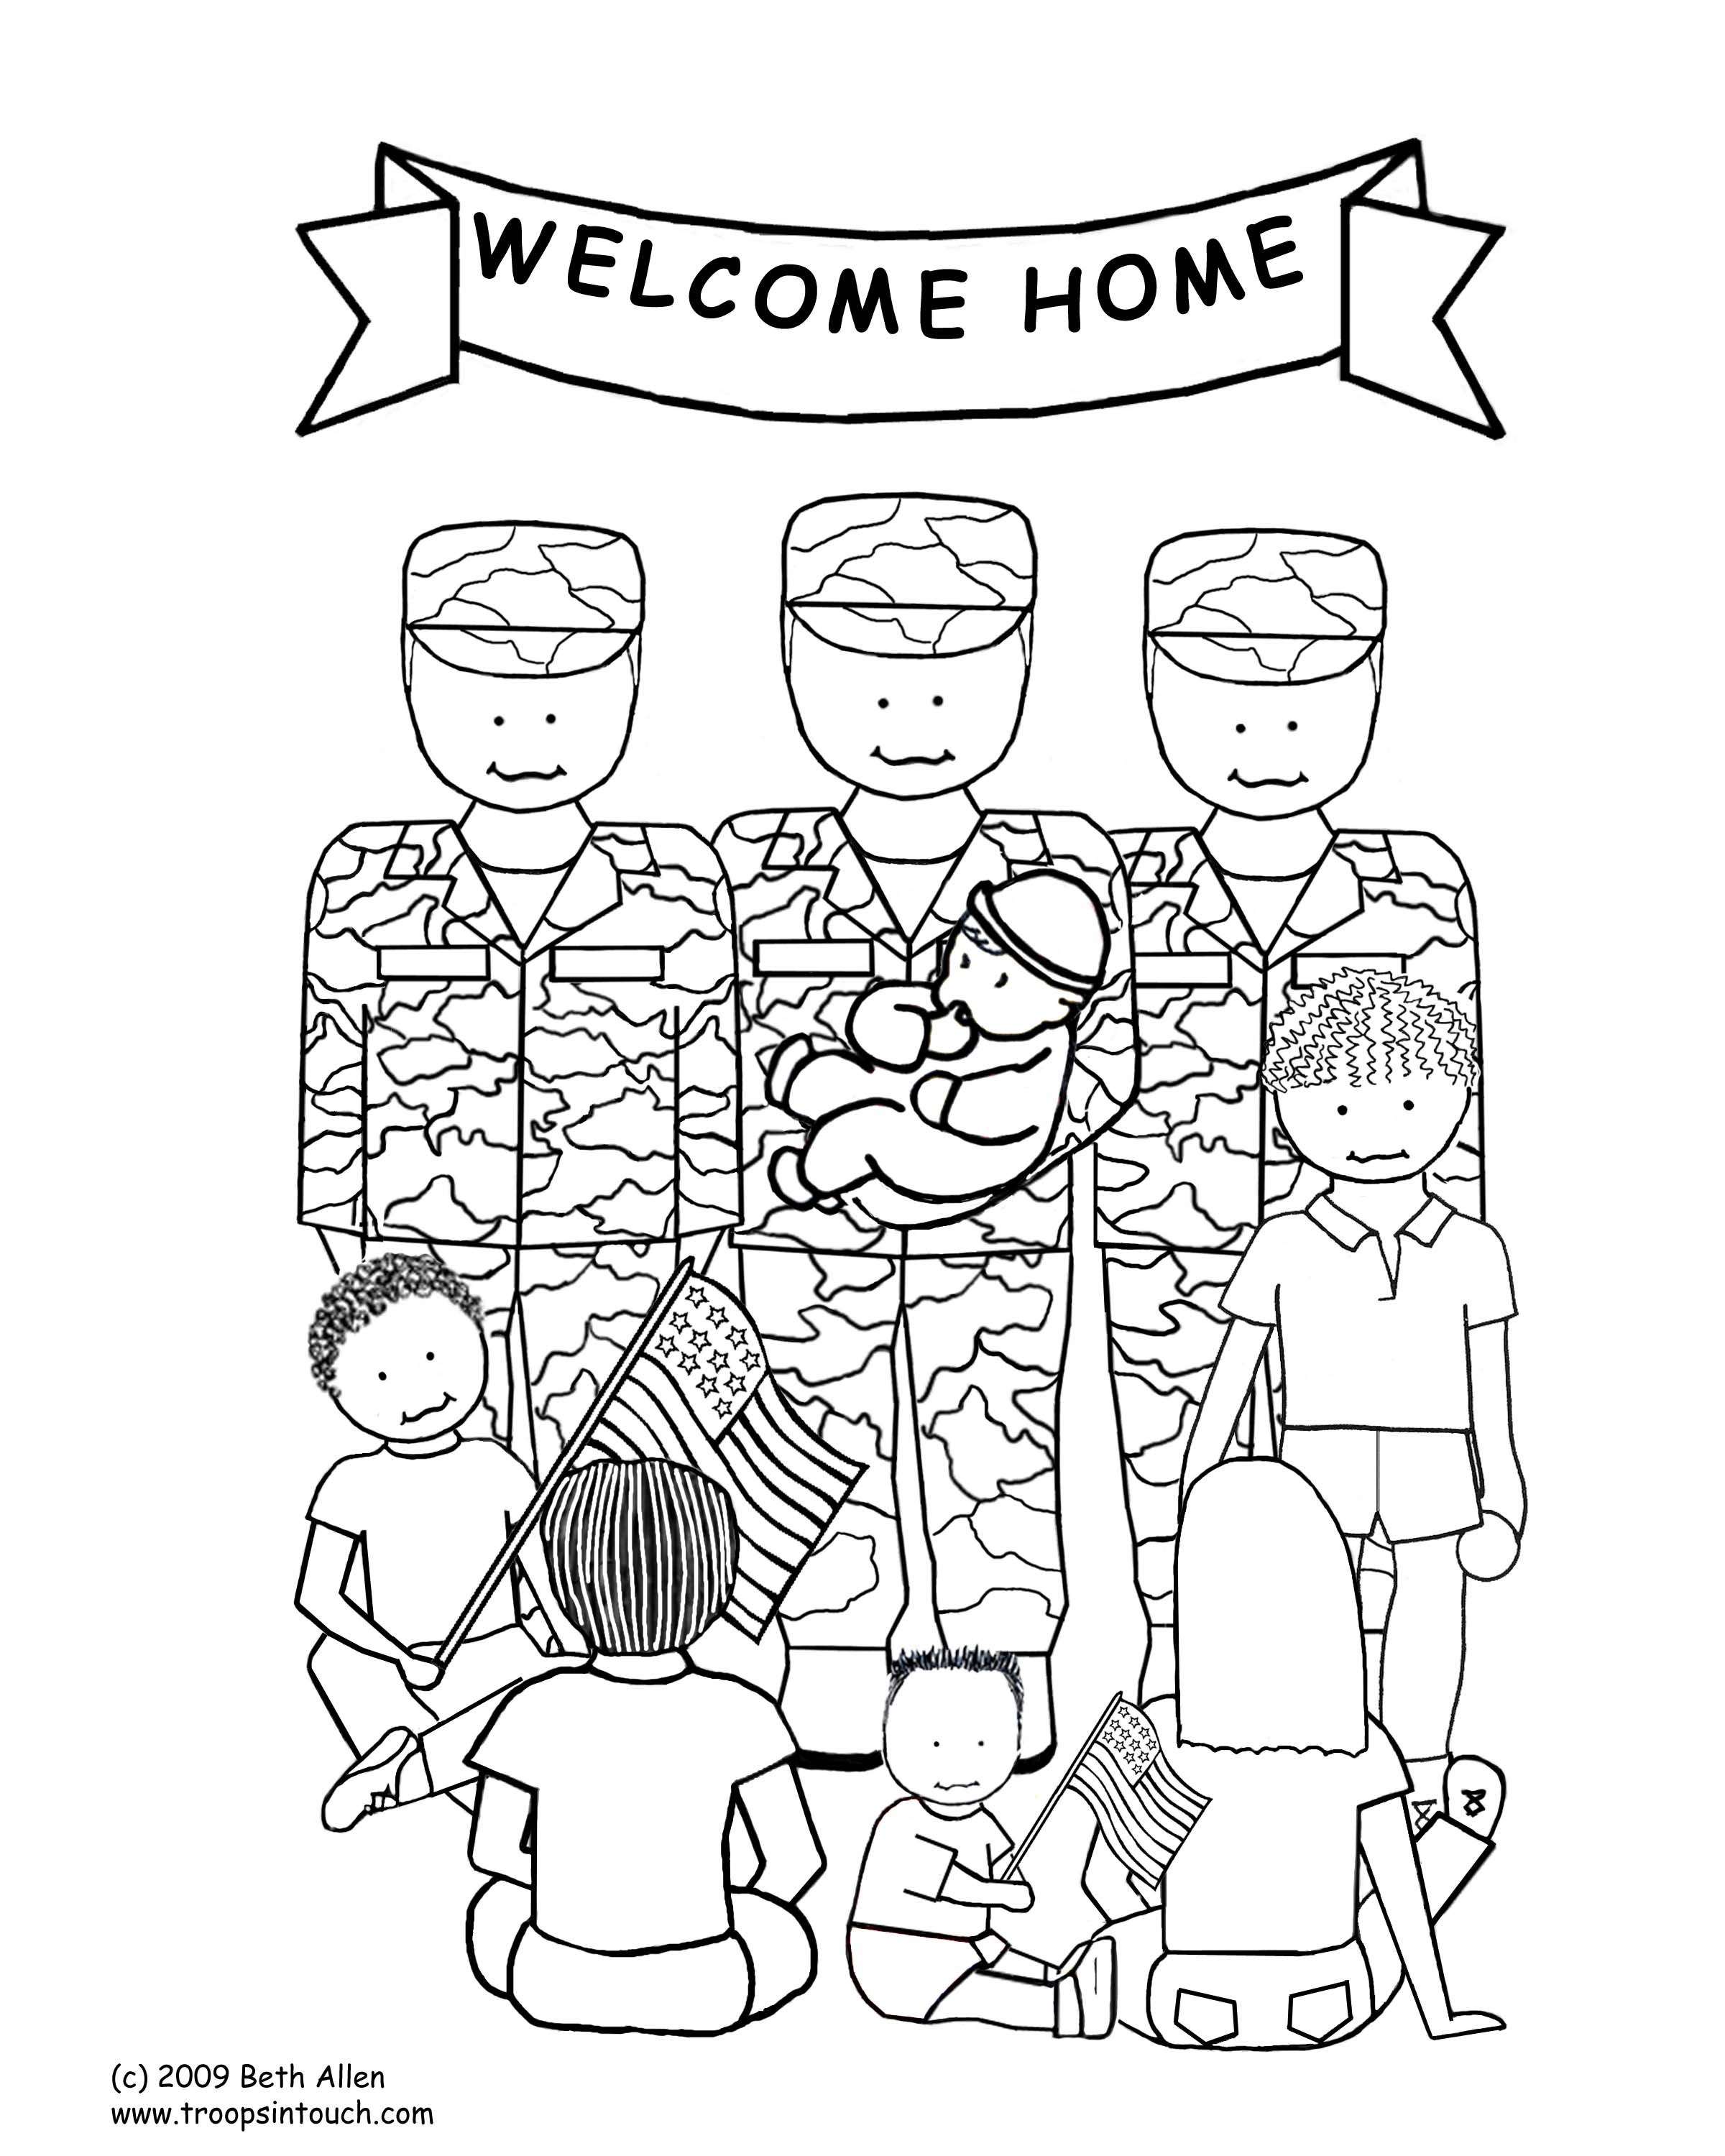 real coloring pages real pony coloring pages at getcoloringscom free real coloring pages 1 1